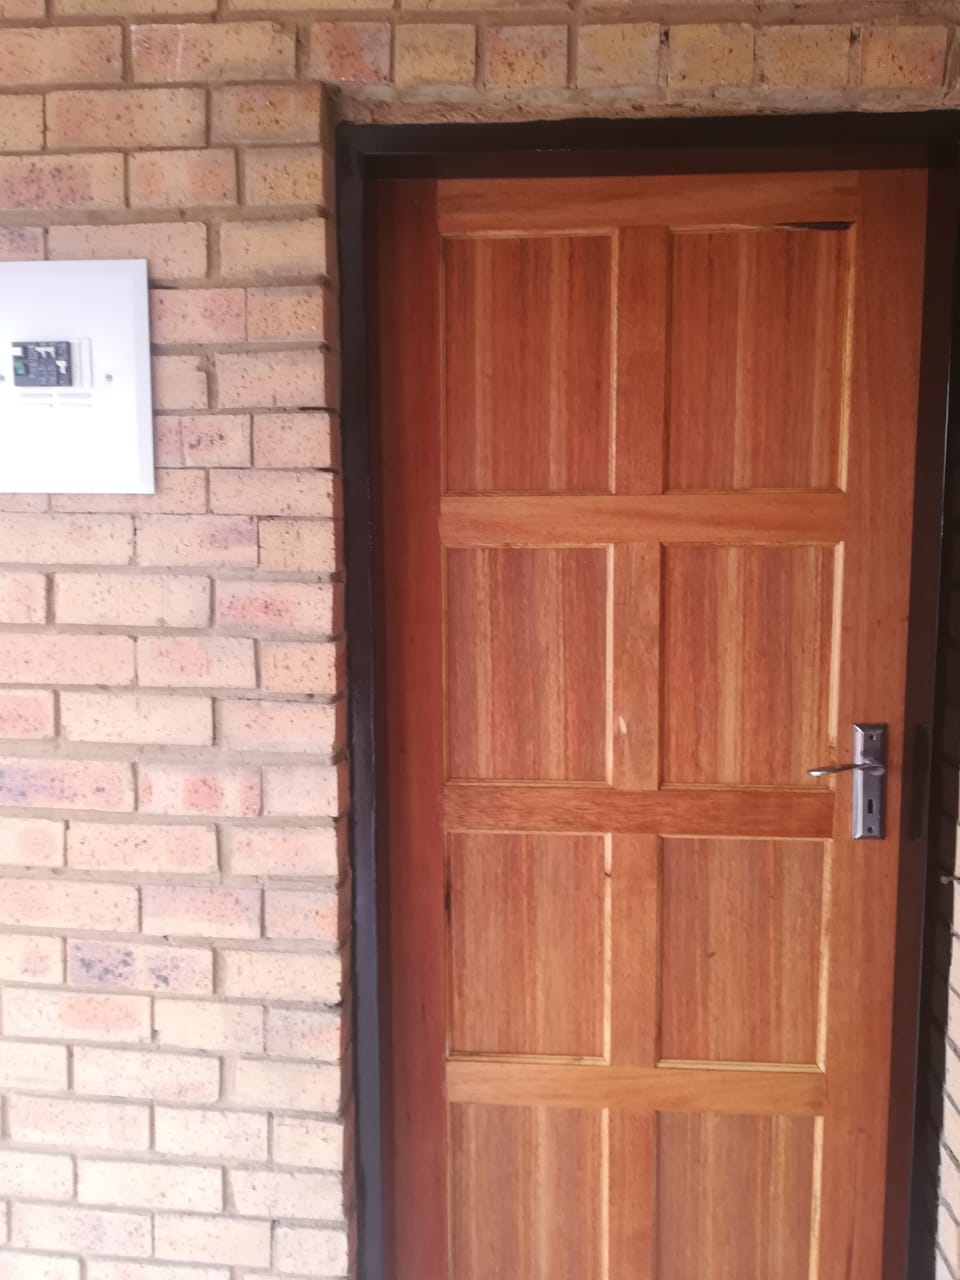 Rooms to rent in Devland jhb